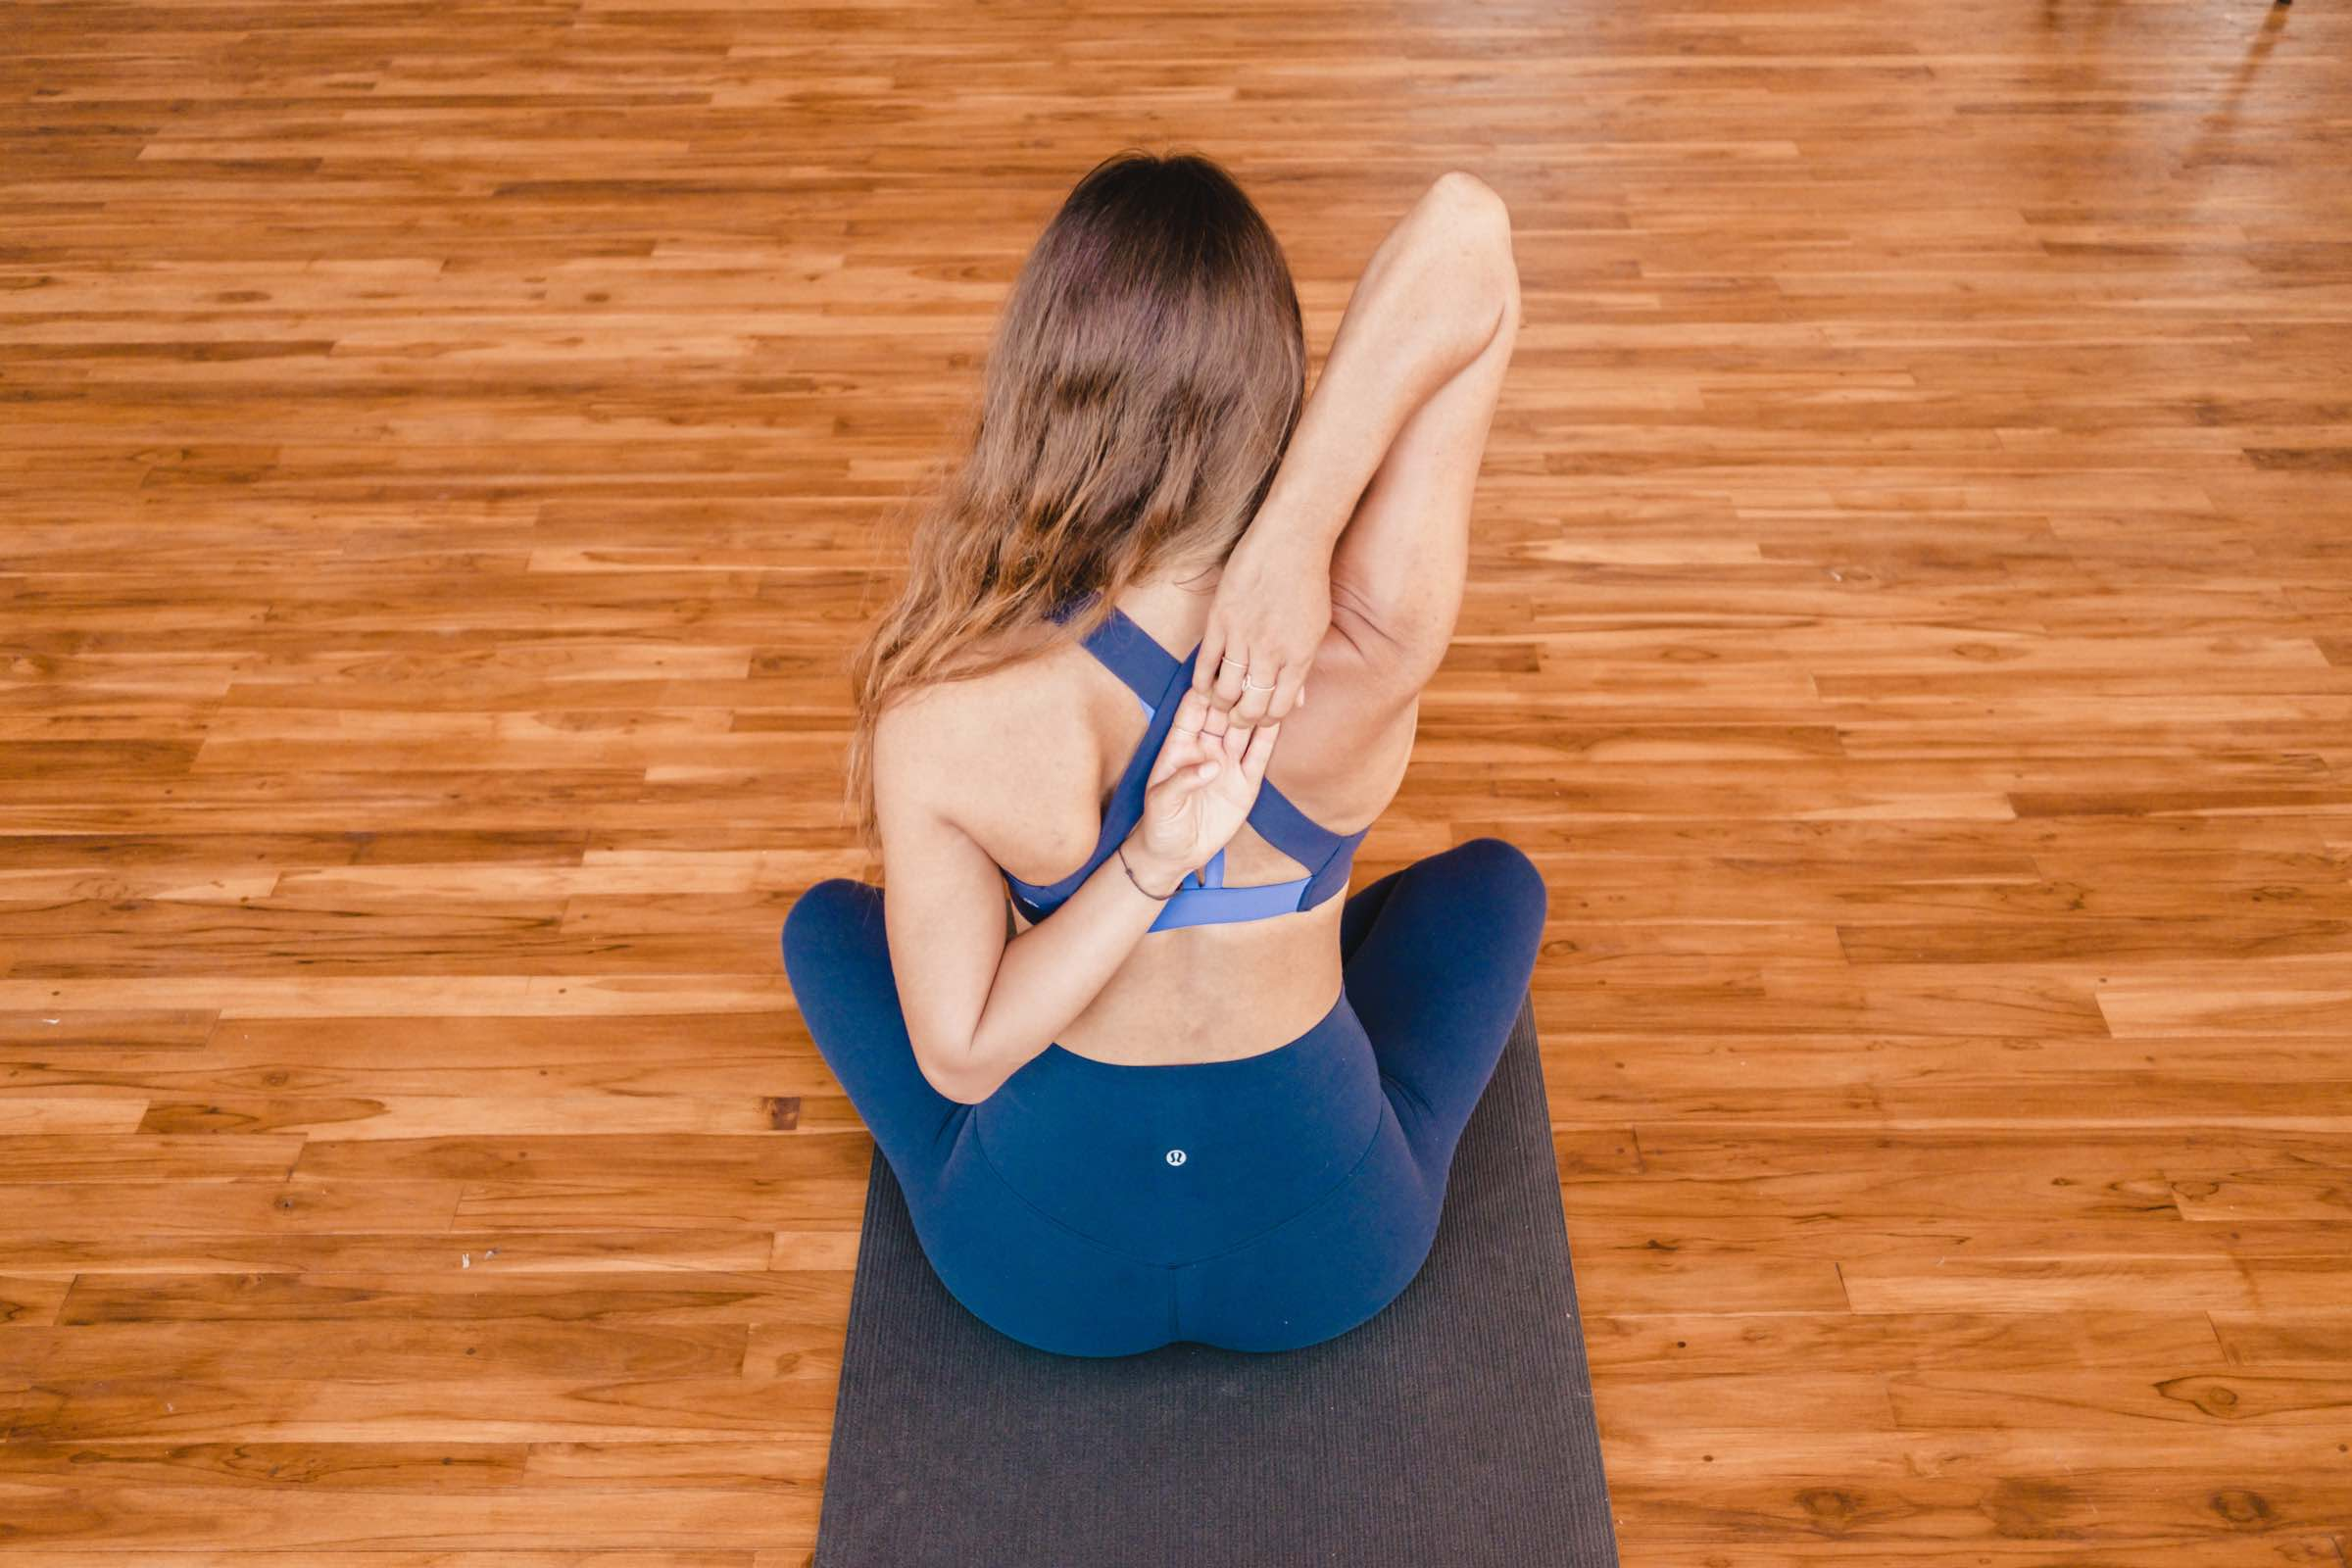 Yoga for Surfing Strains and Overuse Injuries